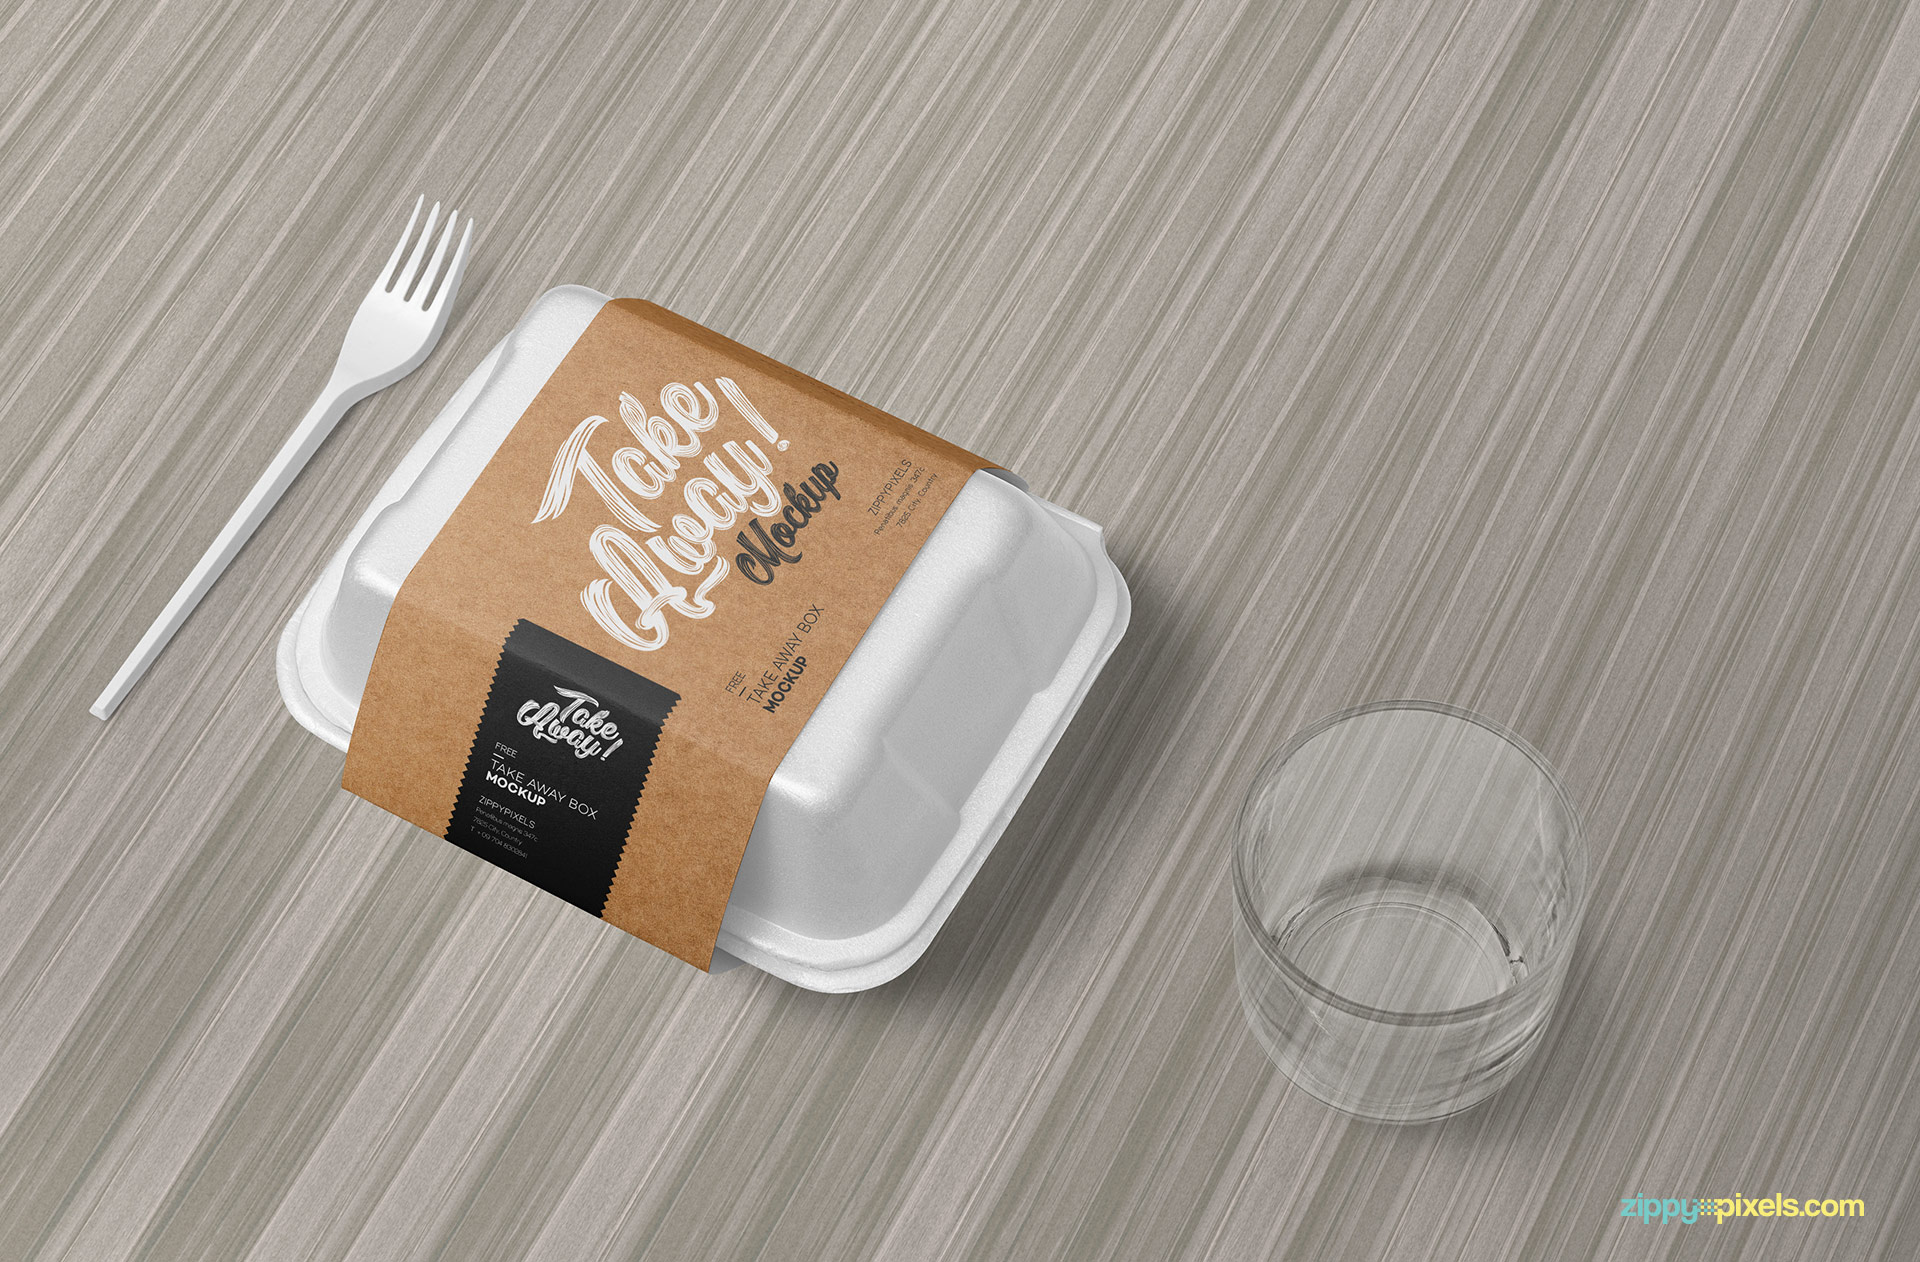 Food branding mockup place on wooden background.